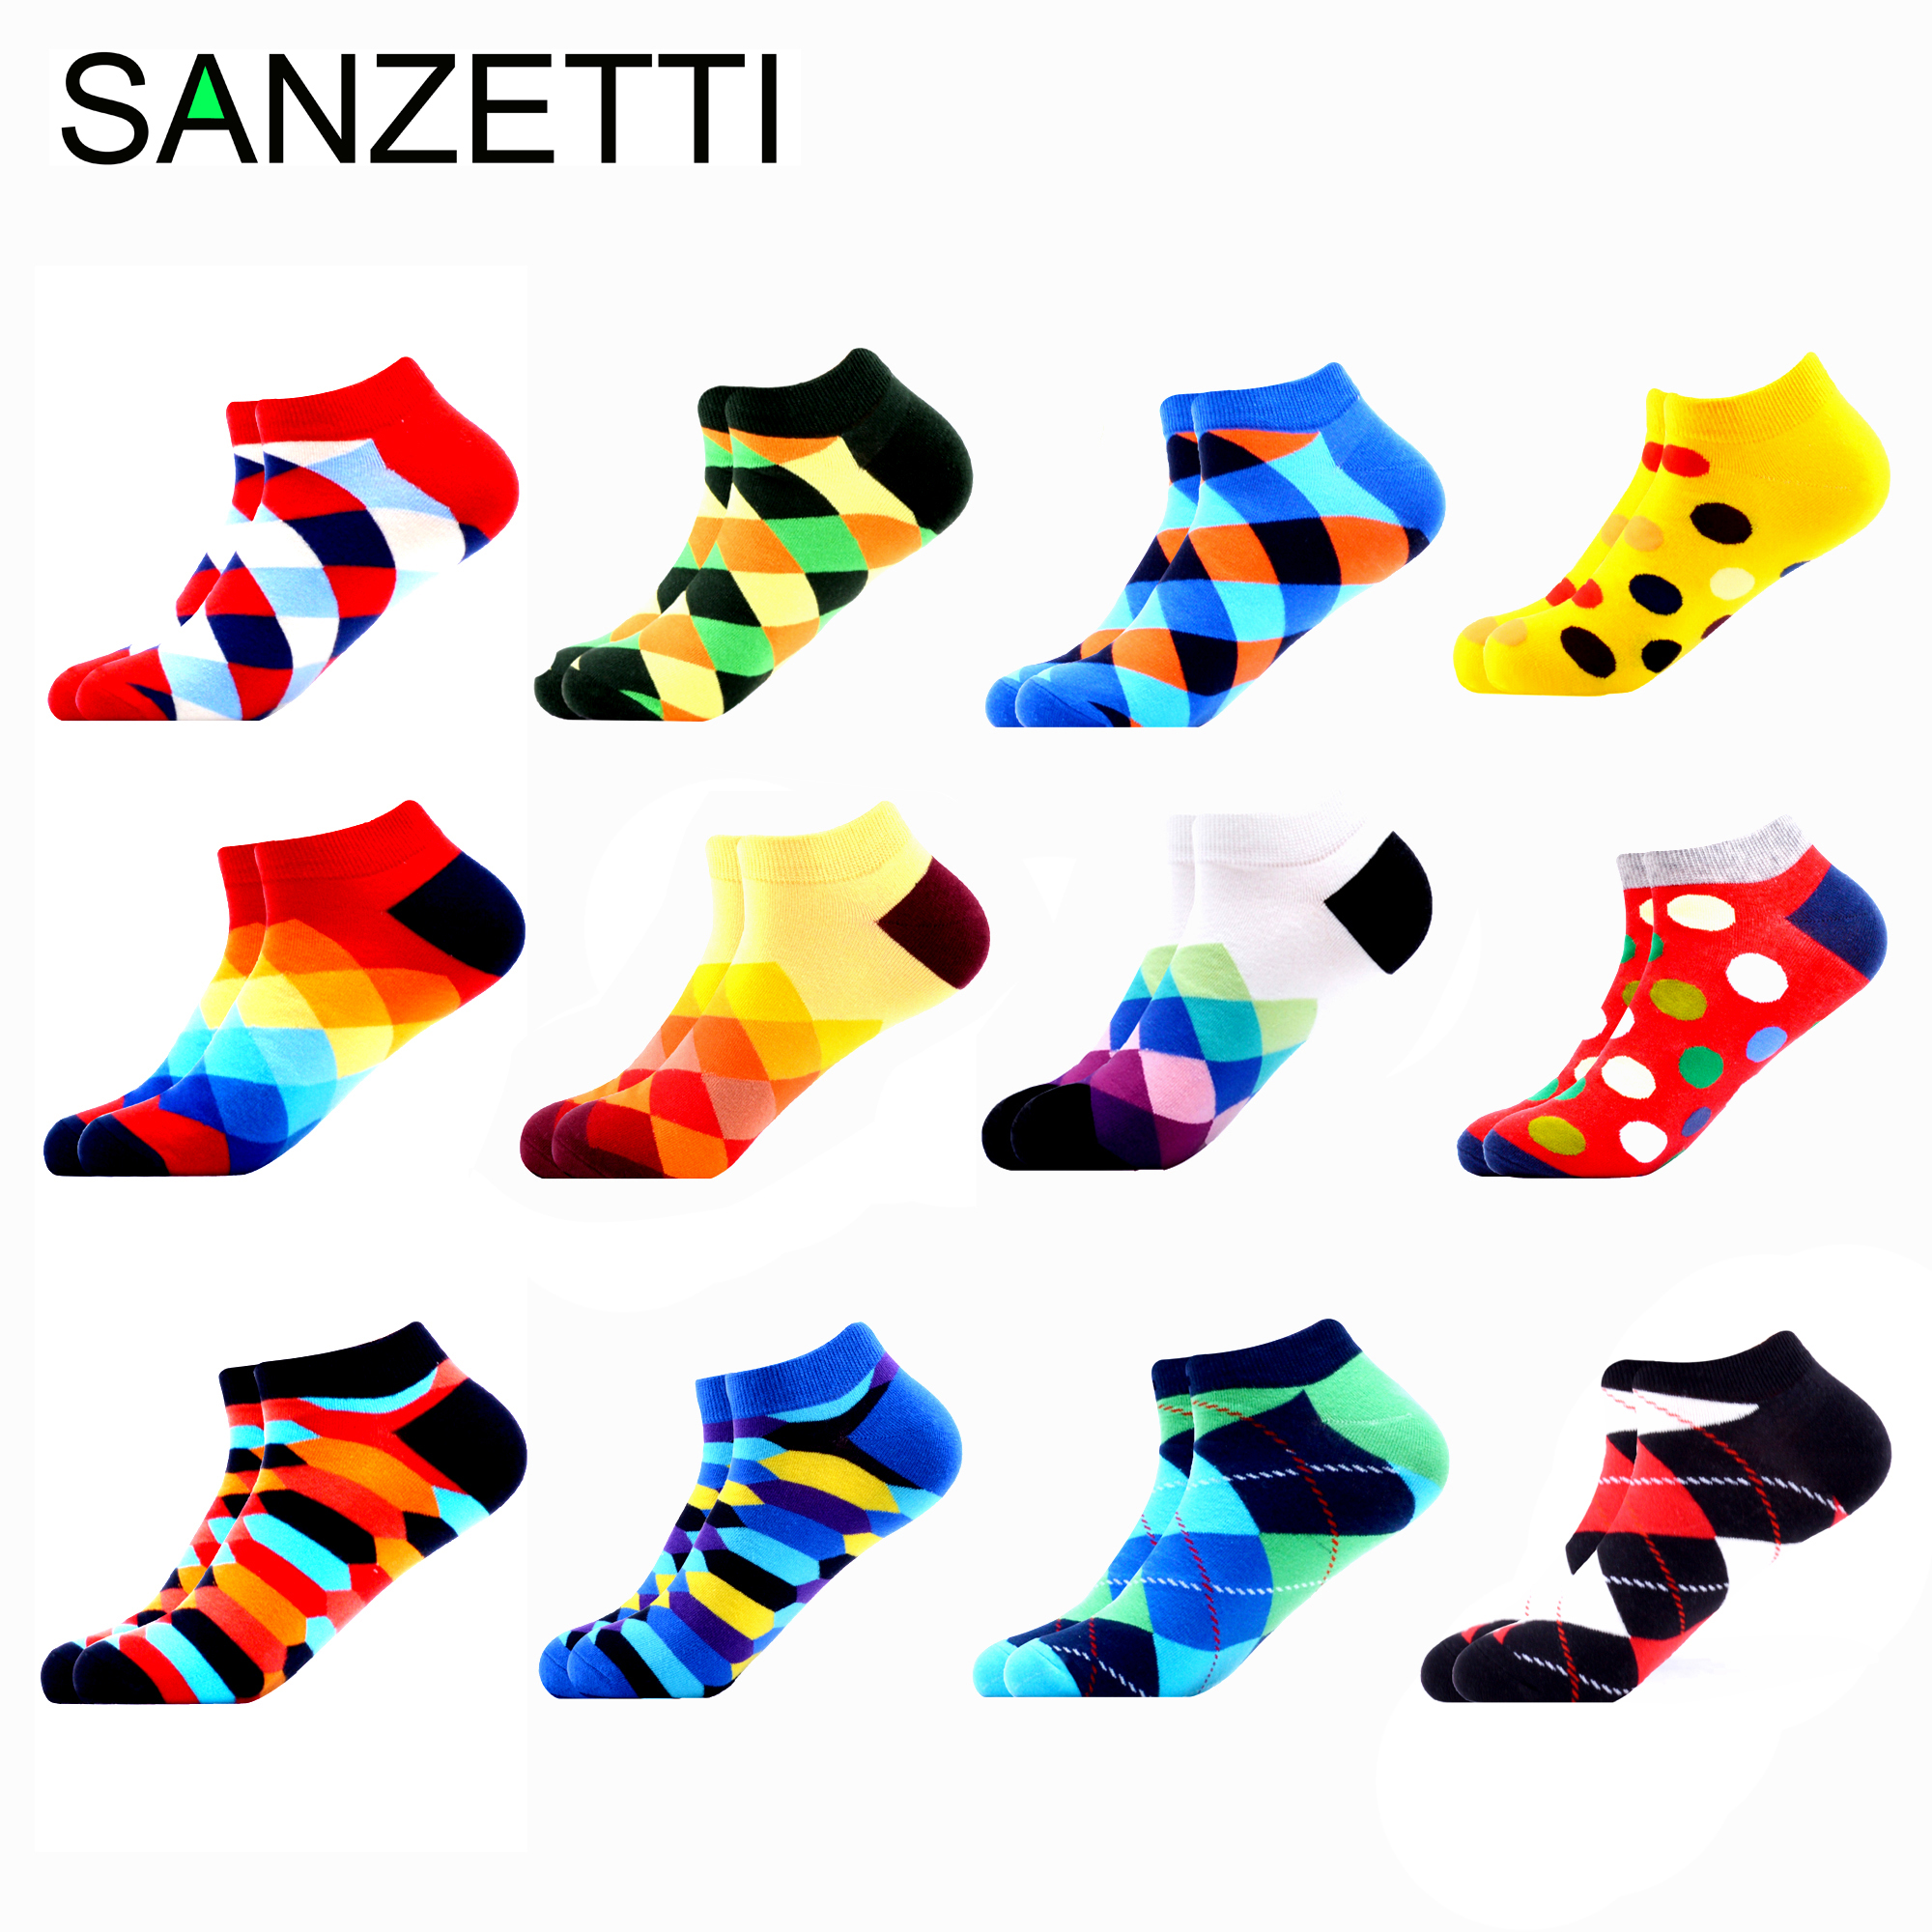 SANZETTI 12 Pairs/Lot Men Casual Colorful High Quality Combed Cotton Socks Breathable Fashion Boat Socks Happy Funny Gift Socks